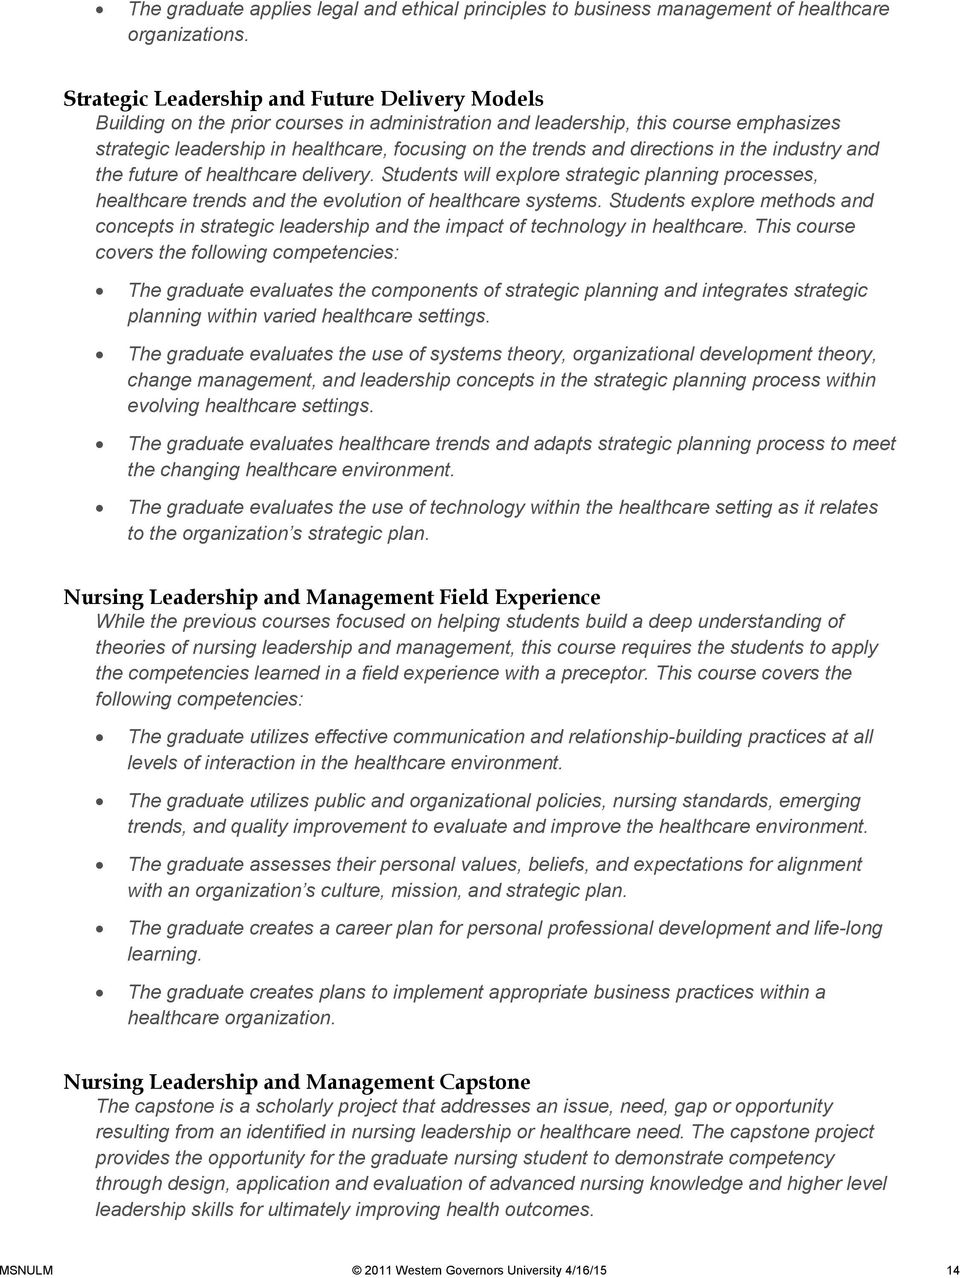 Master of Science in Nursing Leadership and Management - PDF